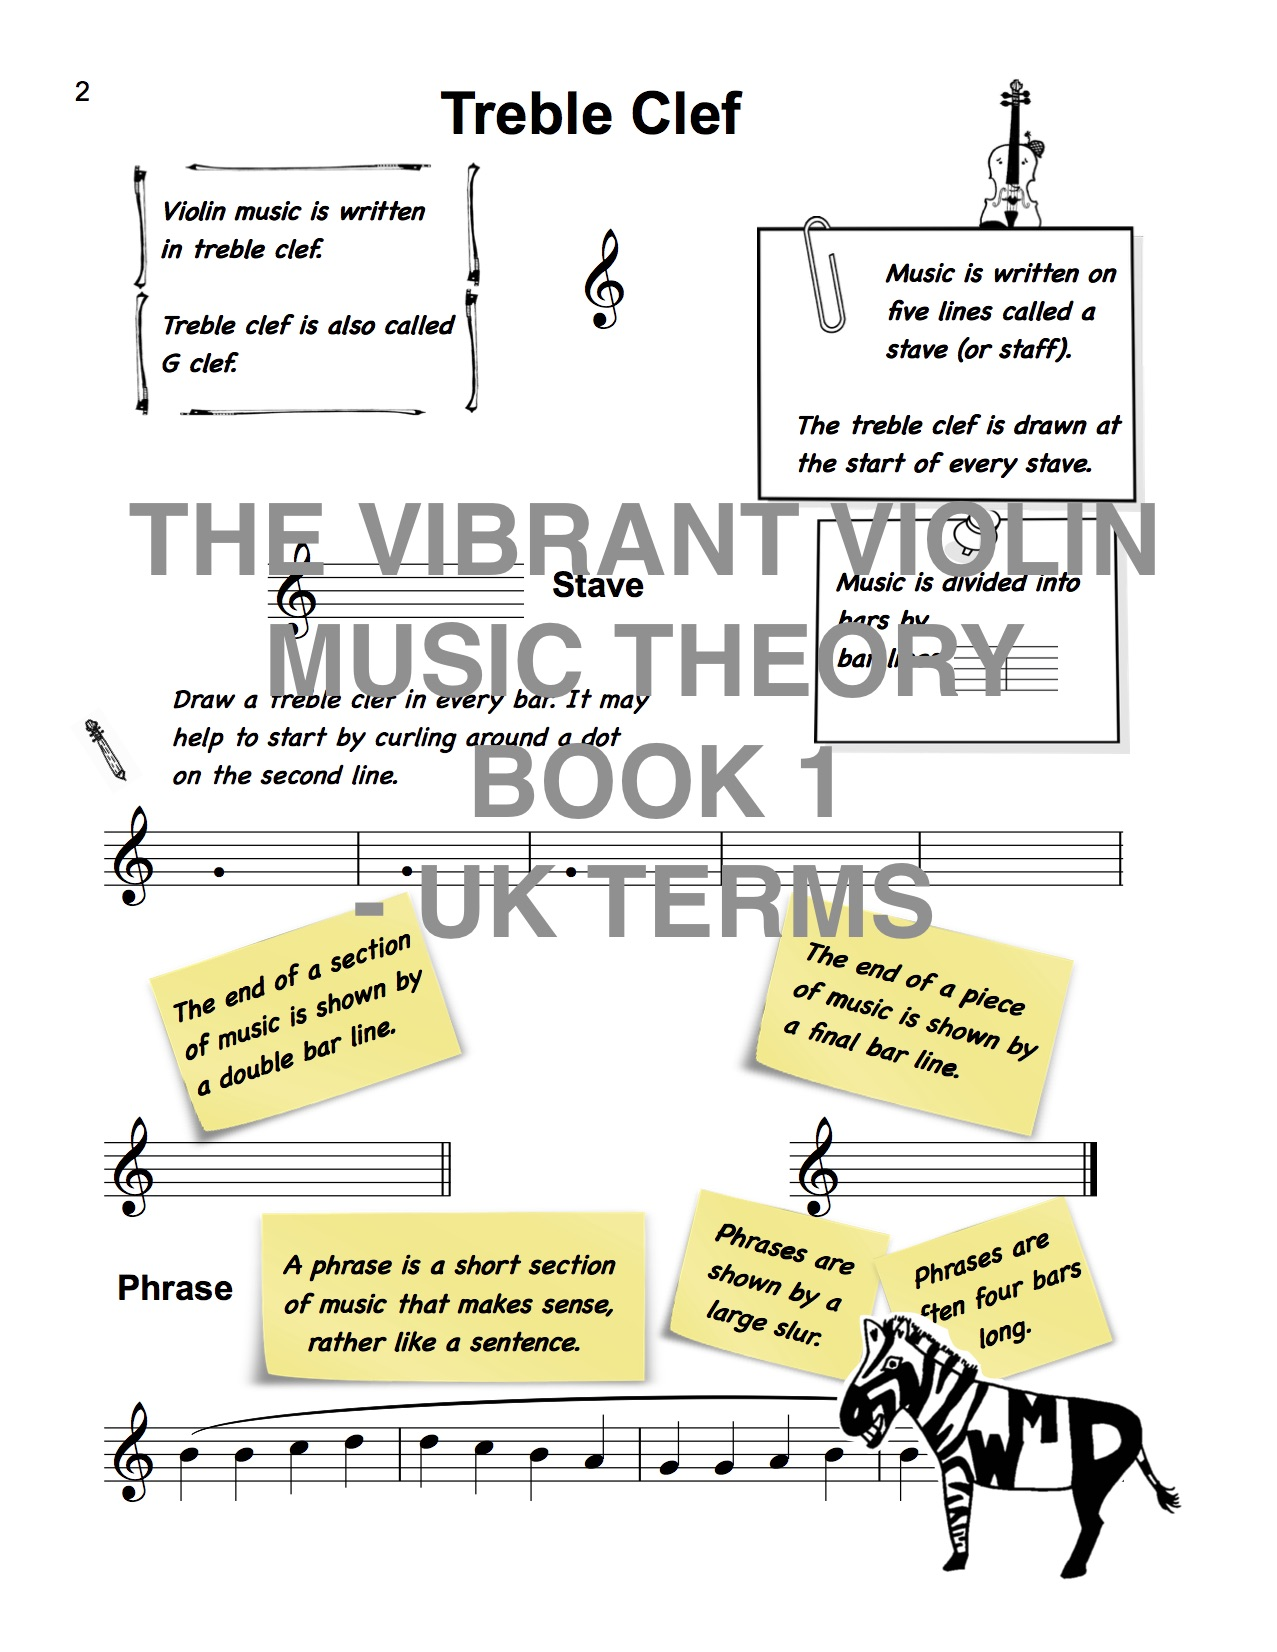 The Vibrant Violin Music Theory Book 1